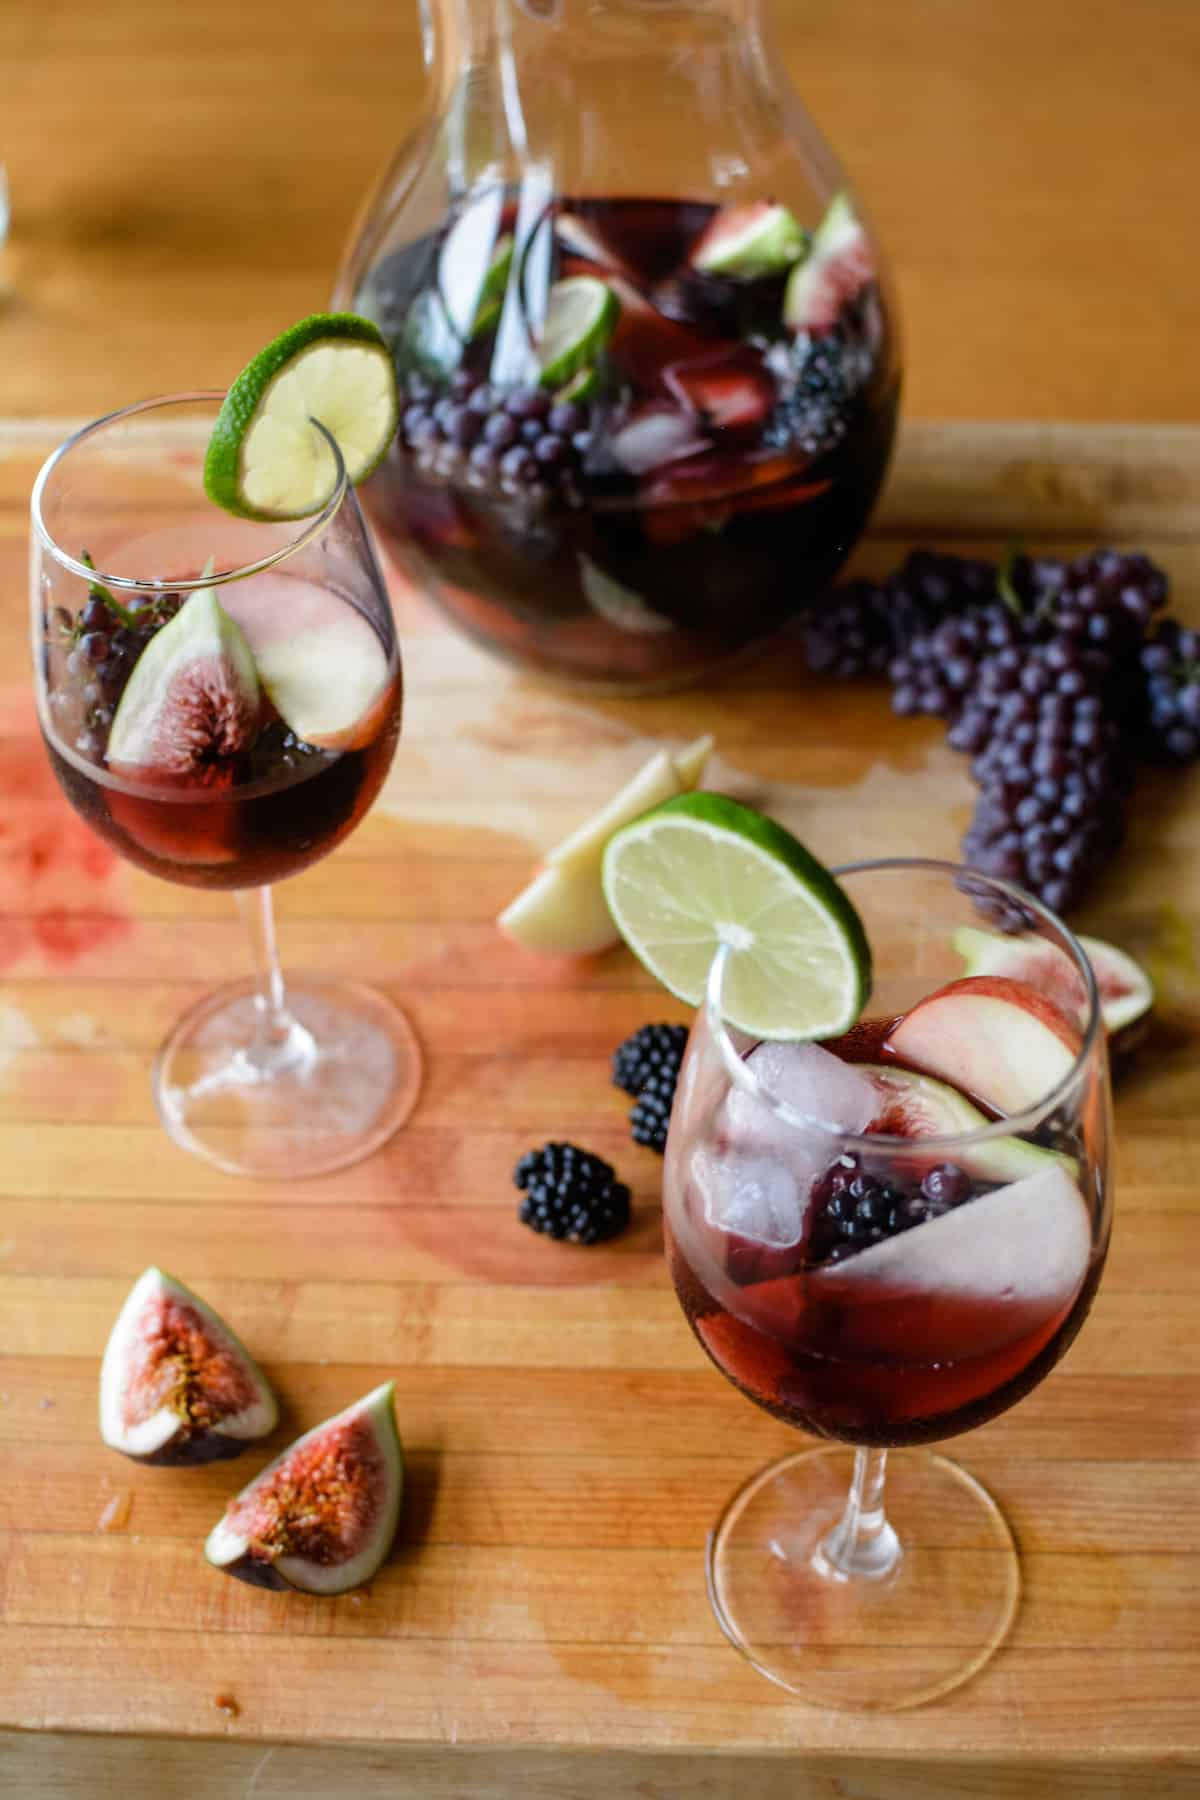 Two glasses filled with ice, fruit, and red wine sitting on a wood cutting board next to quartered figs and blackberries.